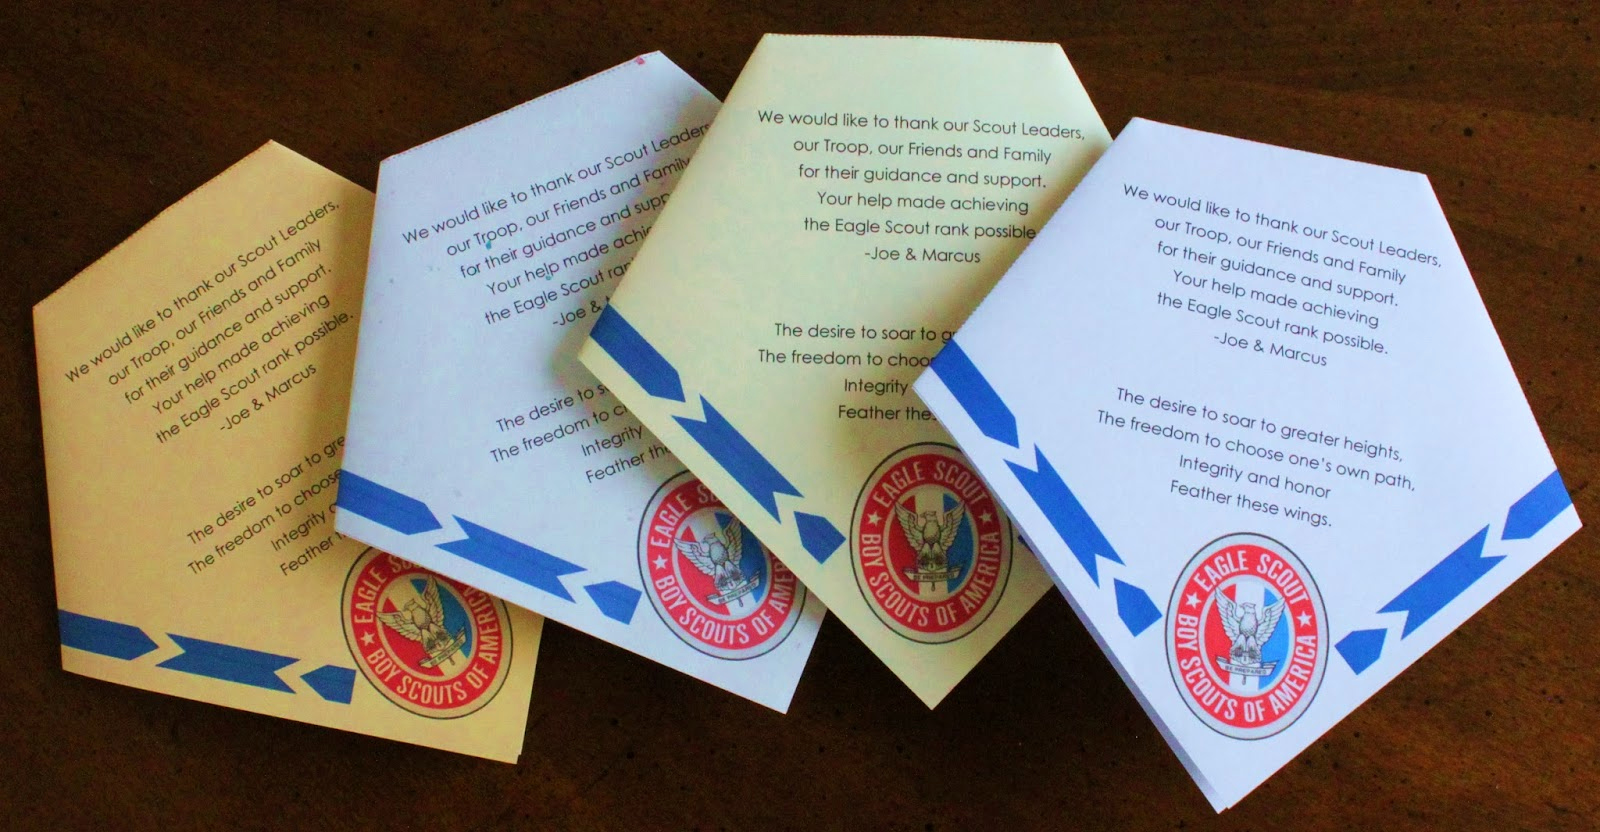 Eagle Scout Invitation Ideas Lovely Akela S Council Cub Scout Leader Training Eagle Scout